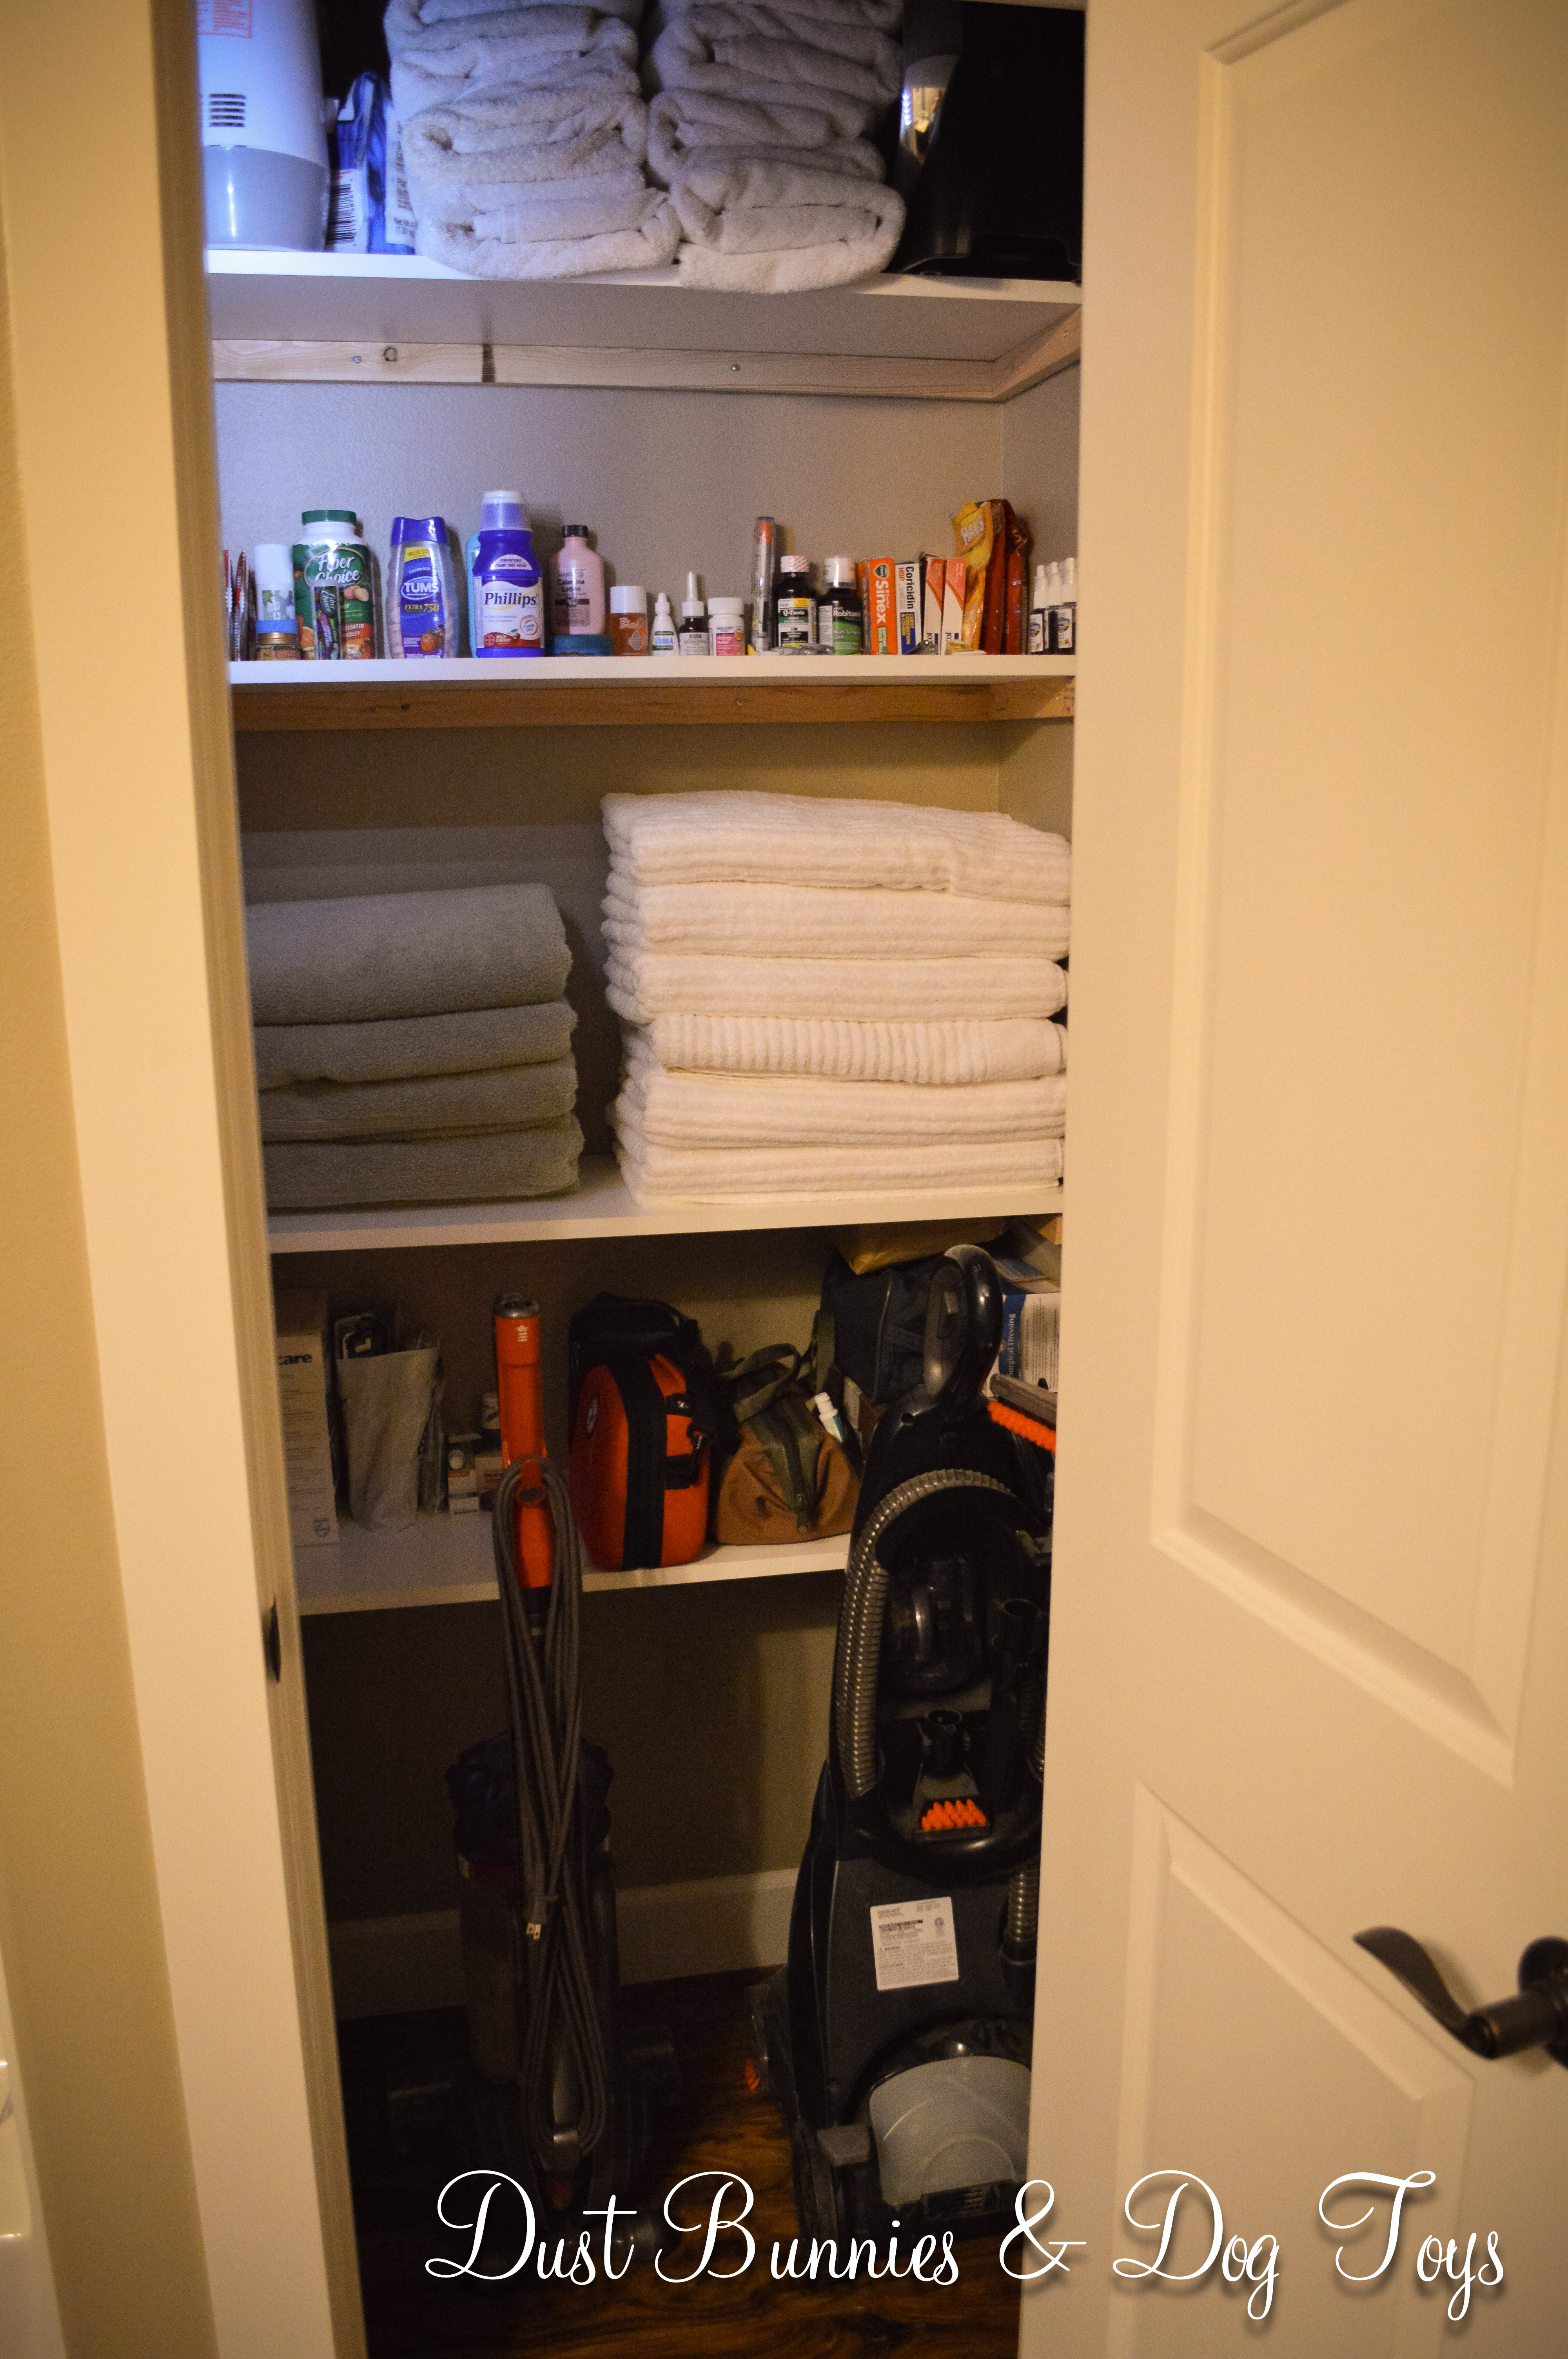 cleaner system station iron mops closet steam ironing